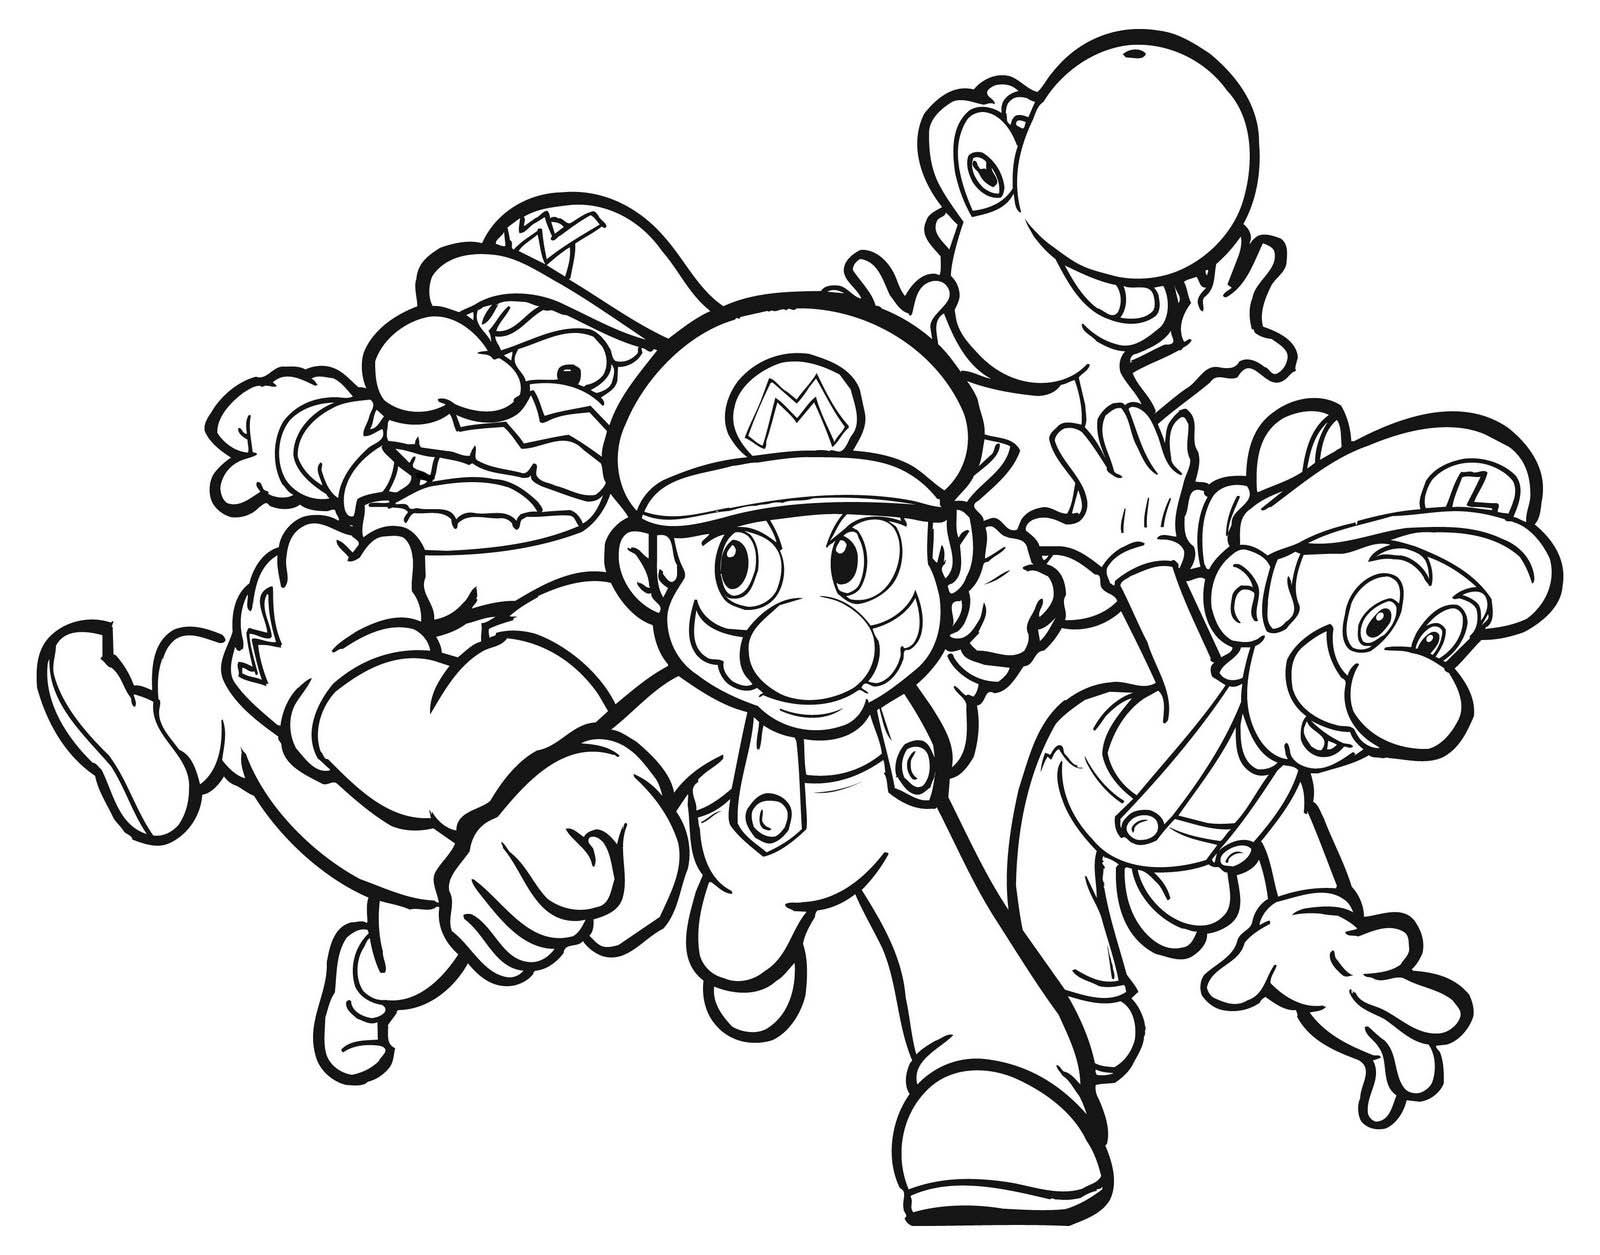 Free Printable Mario Coloring Pages For Kids Super Mario Coloring Pages Mario Coloring Pages Abstract Coloring Pages